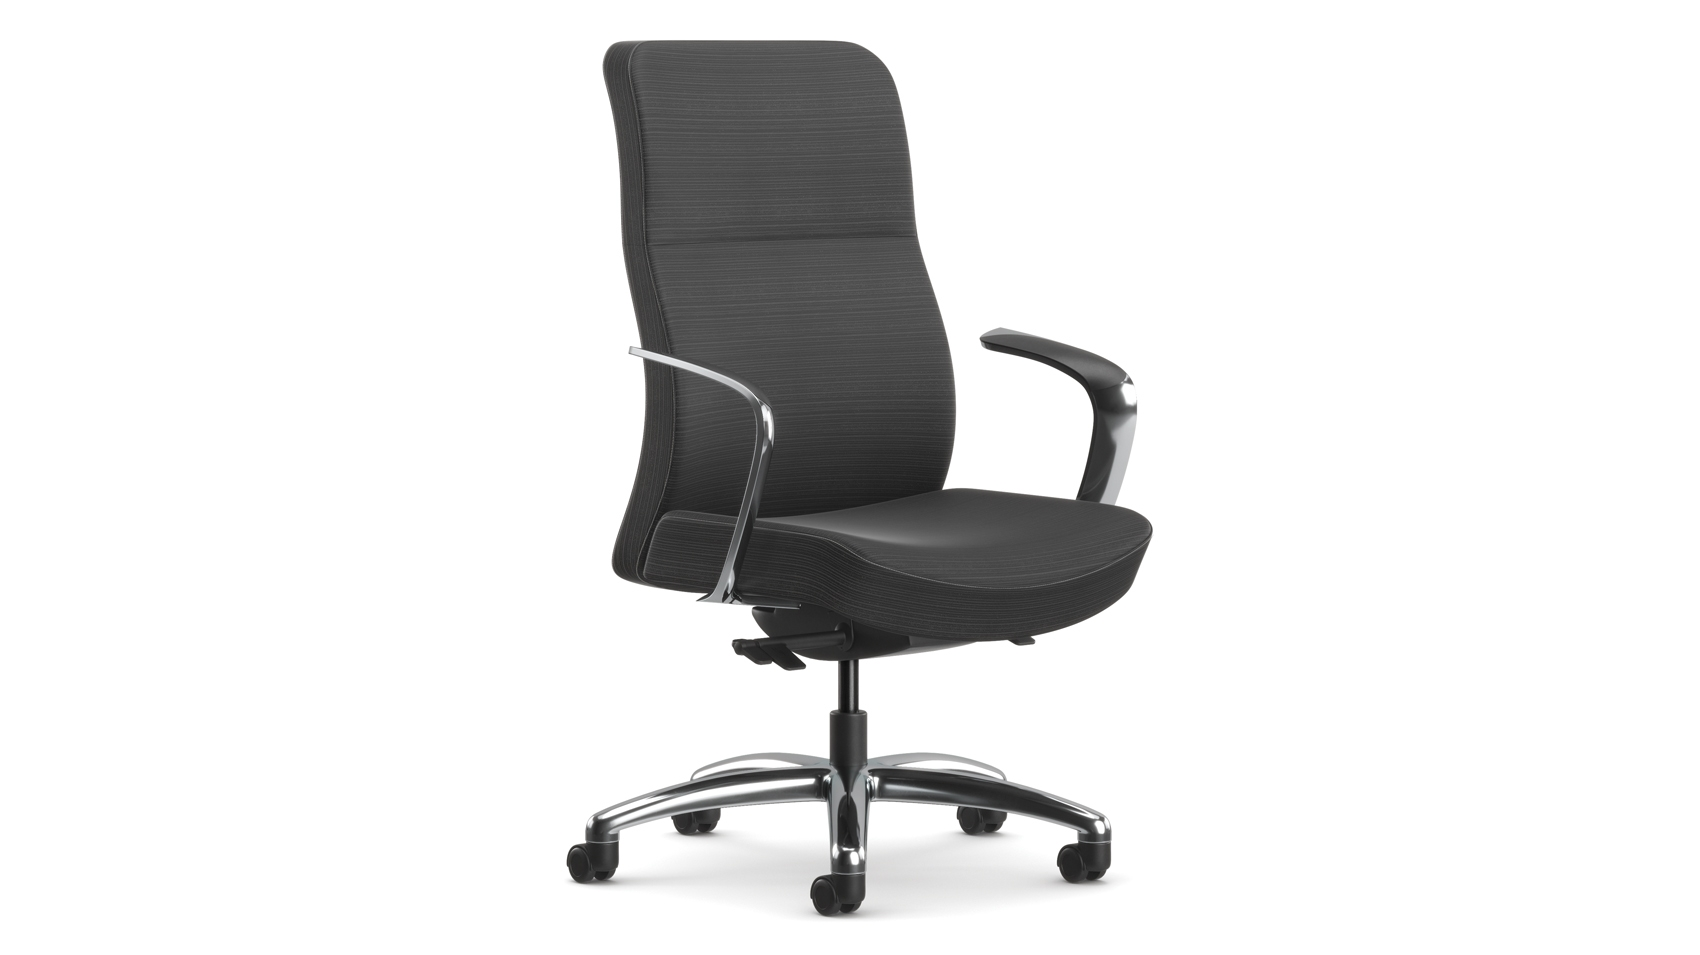 Prime Wow Highmark Repose Office Chairs Enhance Your Posture Lamtechconsult Wood Chair Design Ideas Lamtechconsultcom